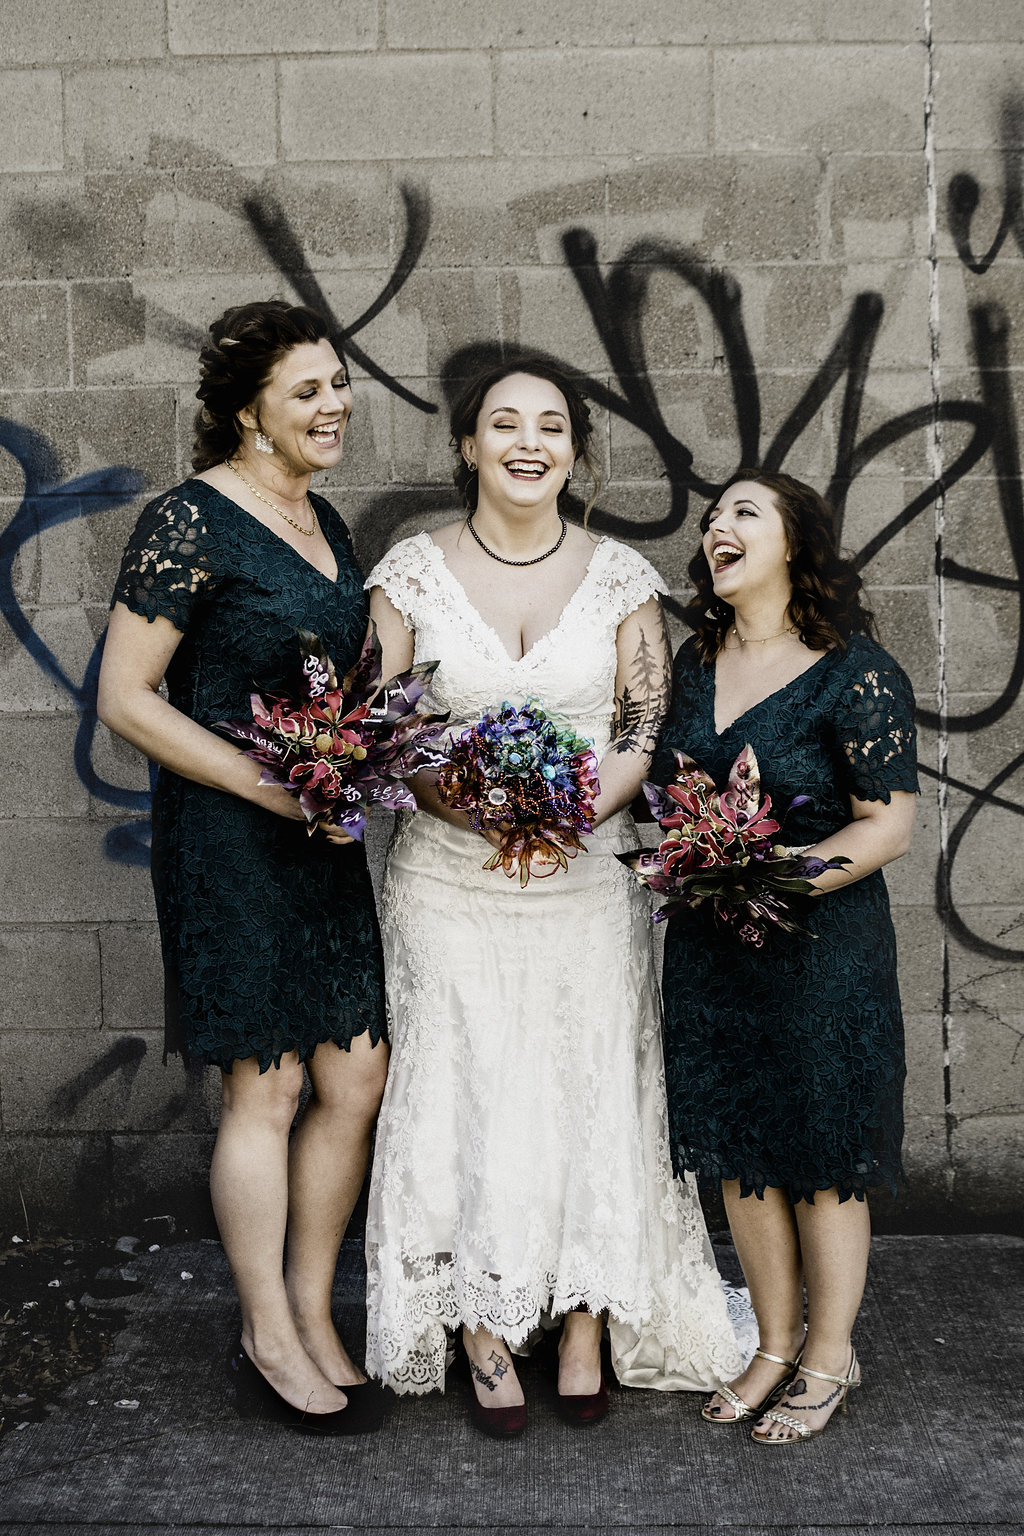 Graffiti Infused City Wedding Inspiration in Pittsburgh Strip District (115).jpg